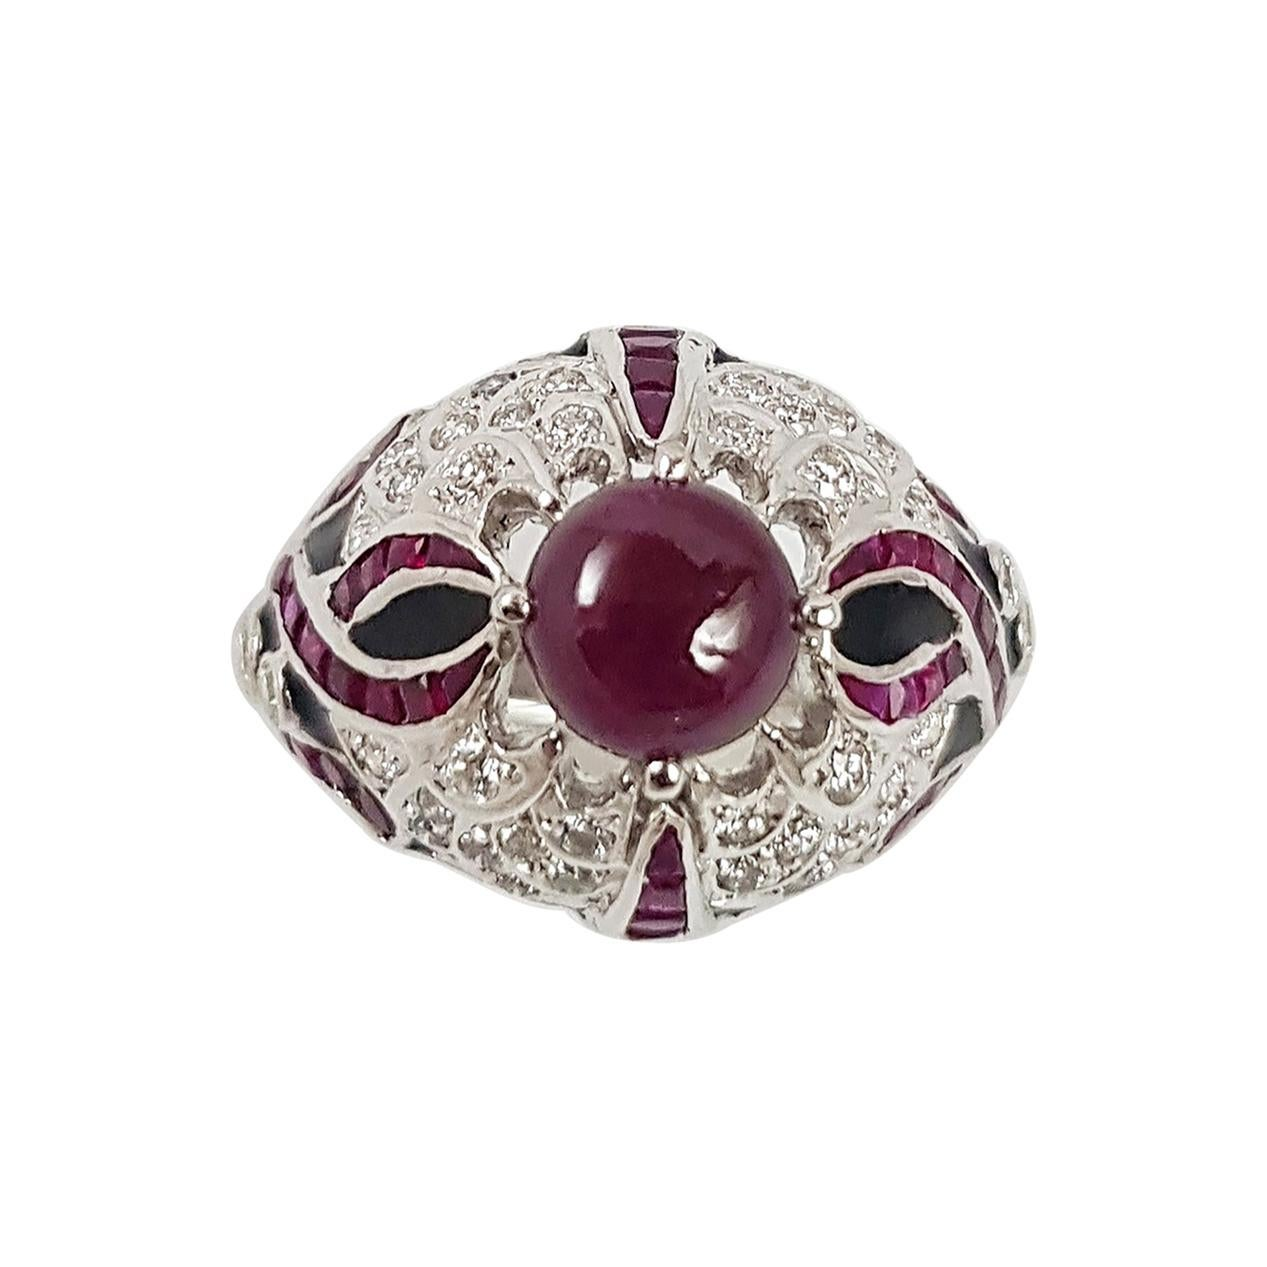 Cabochon Ruby with Ruby and Diamond Ring Set in 18 Karat White Gold Settings